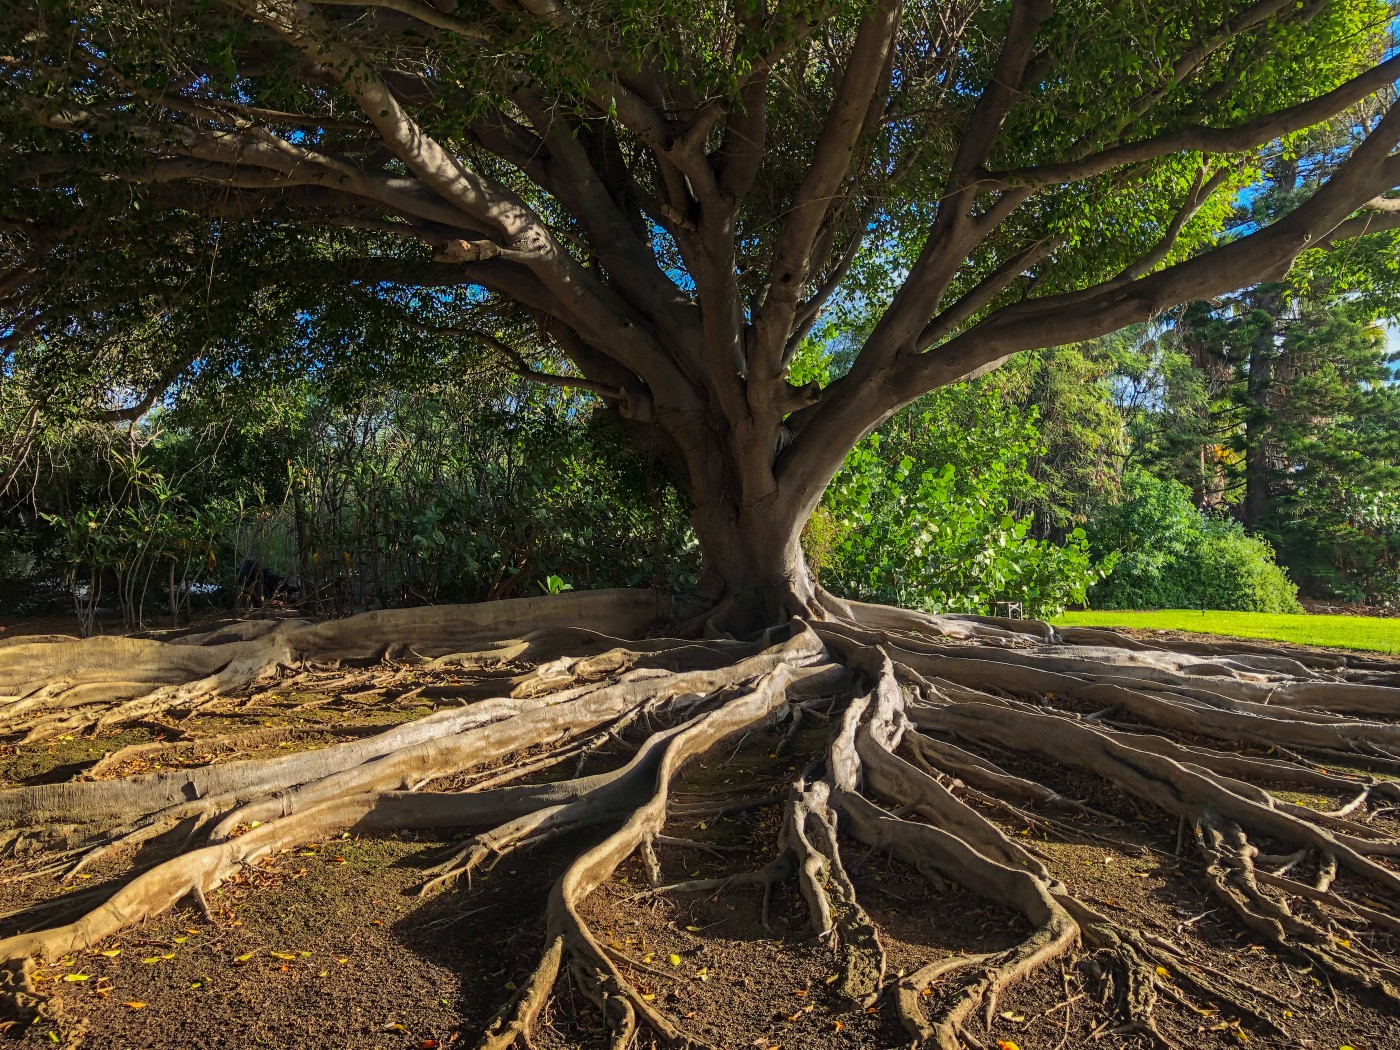 Roots. We all need to sink our roots somewhere